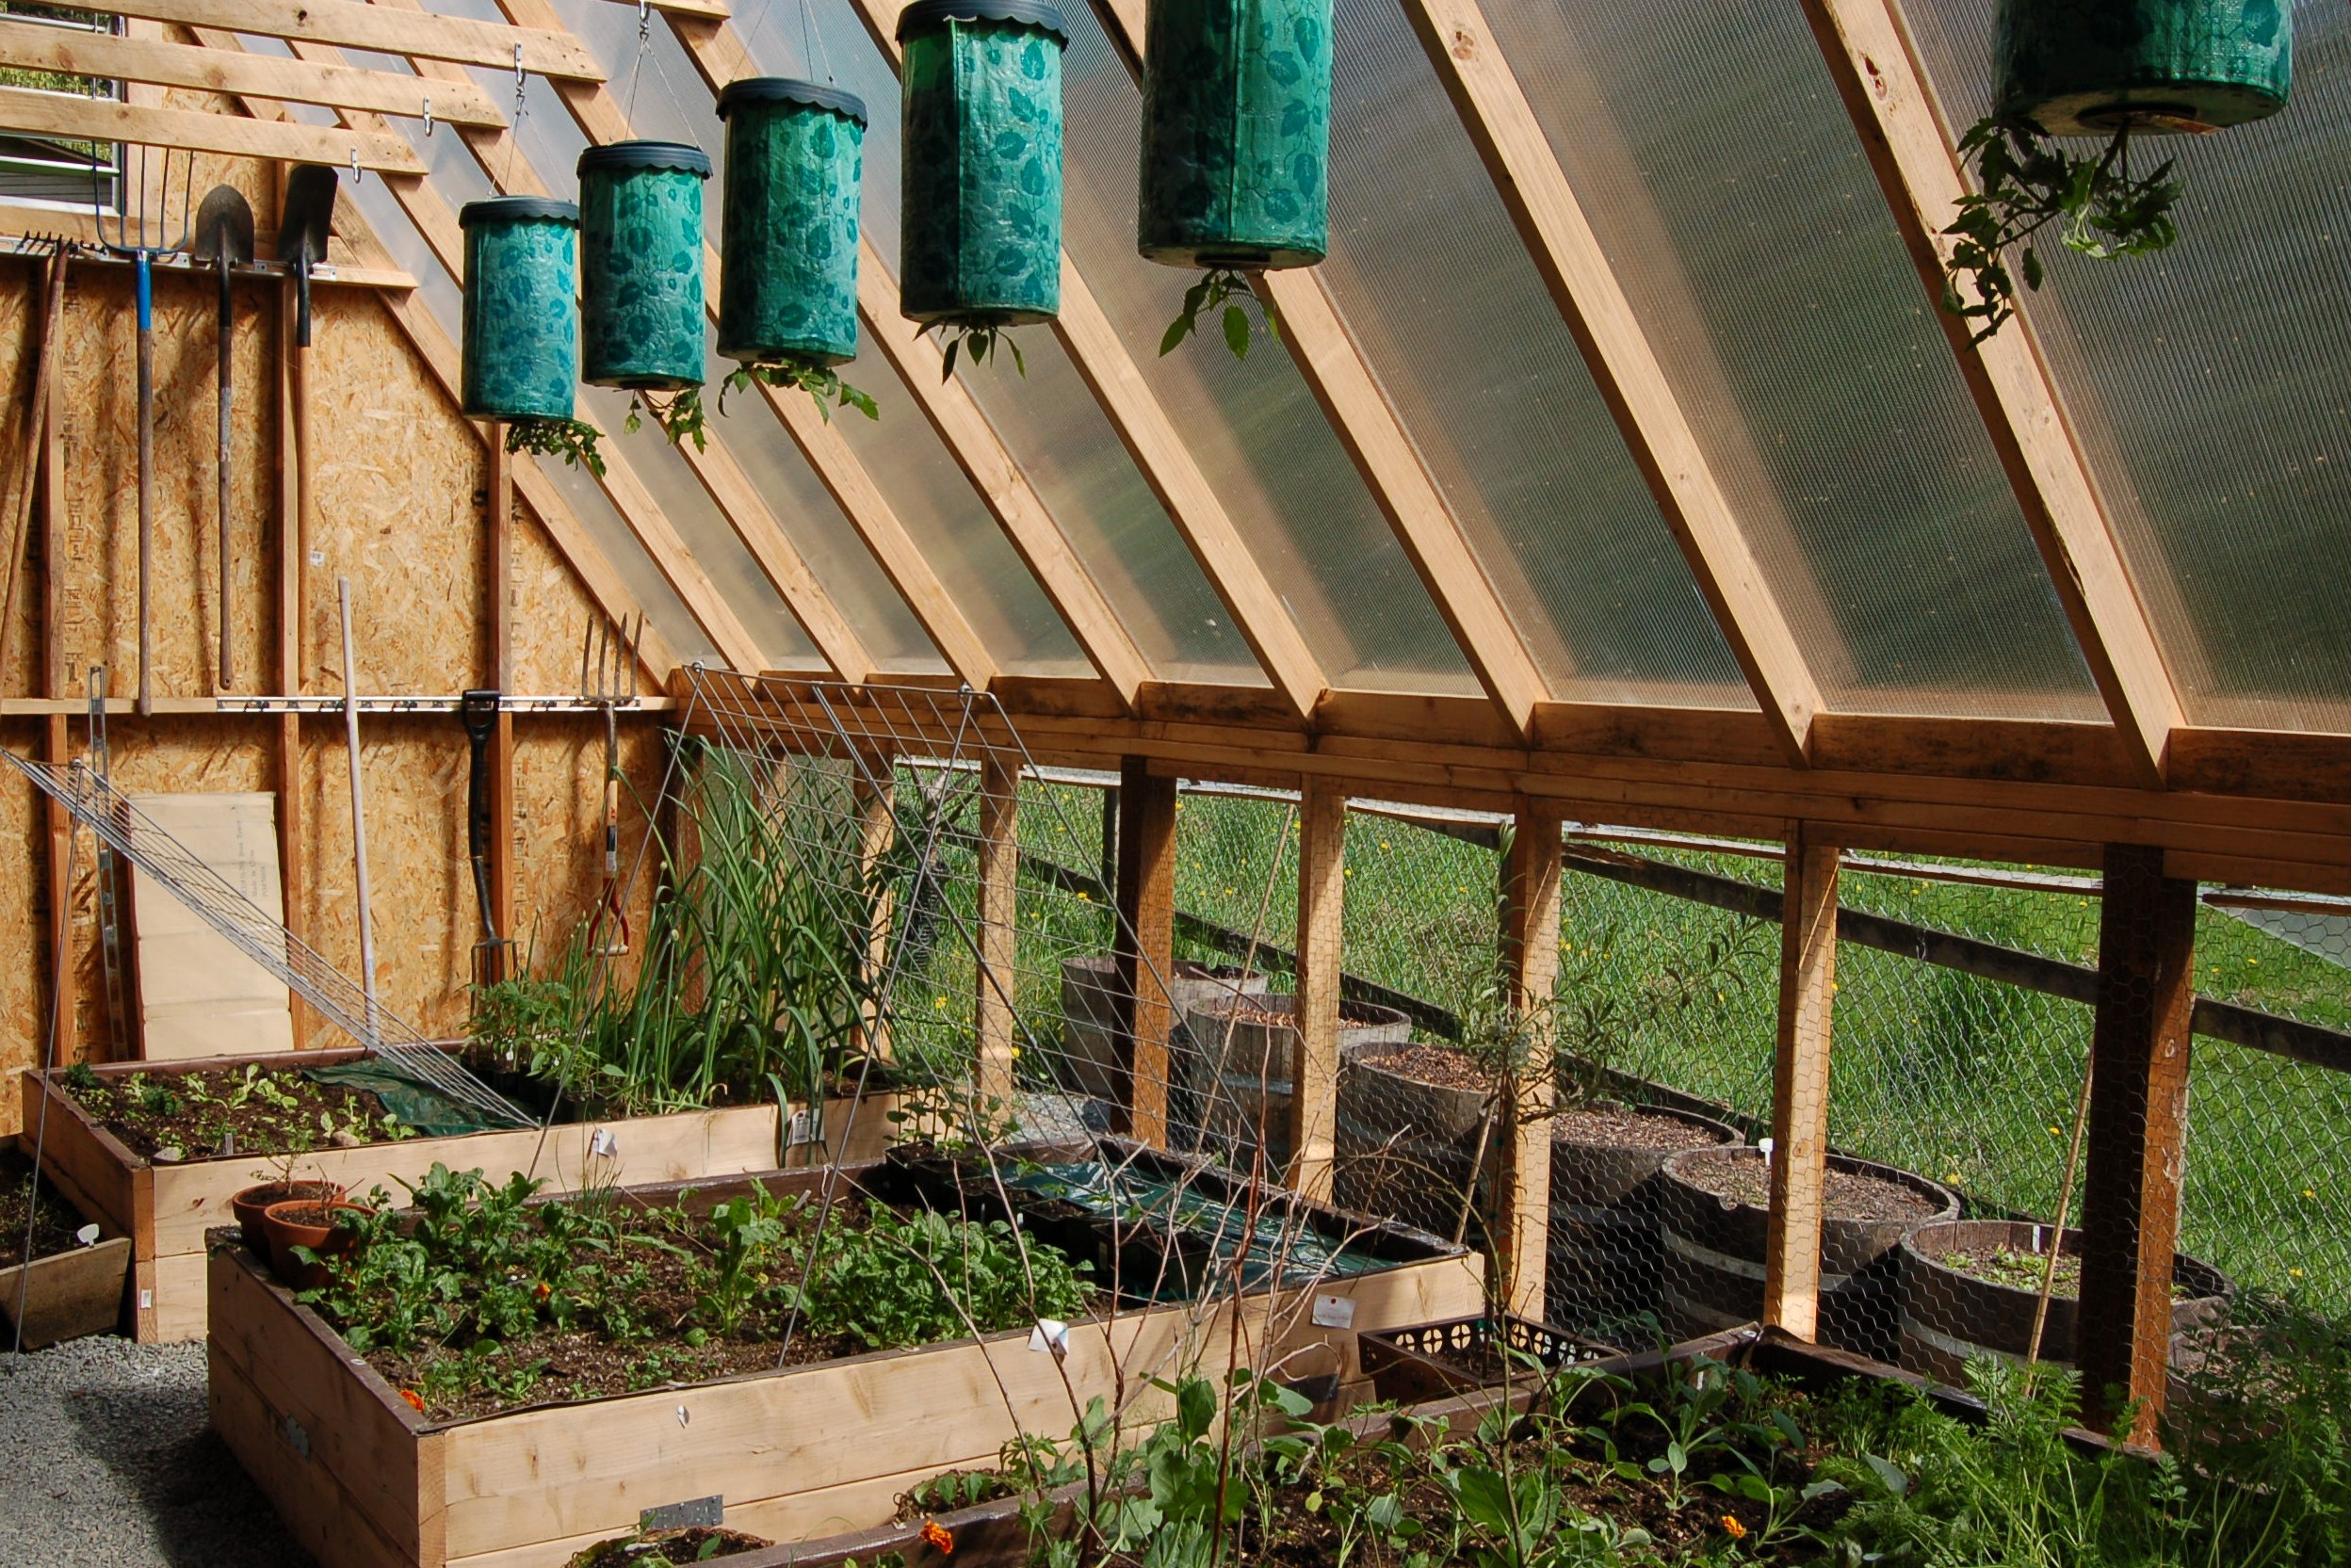 Hanging planters and raised beds